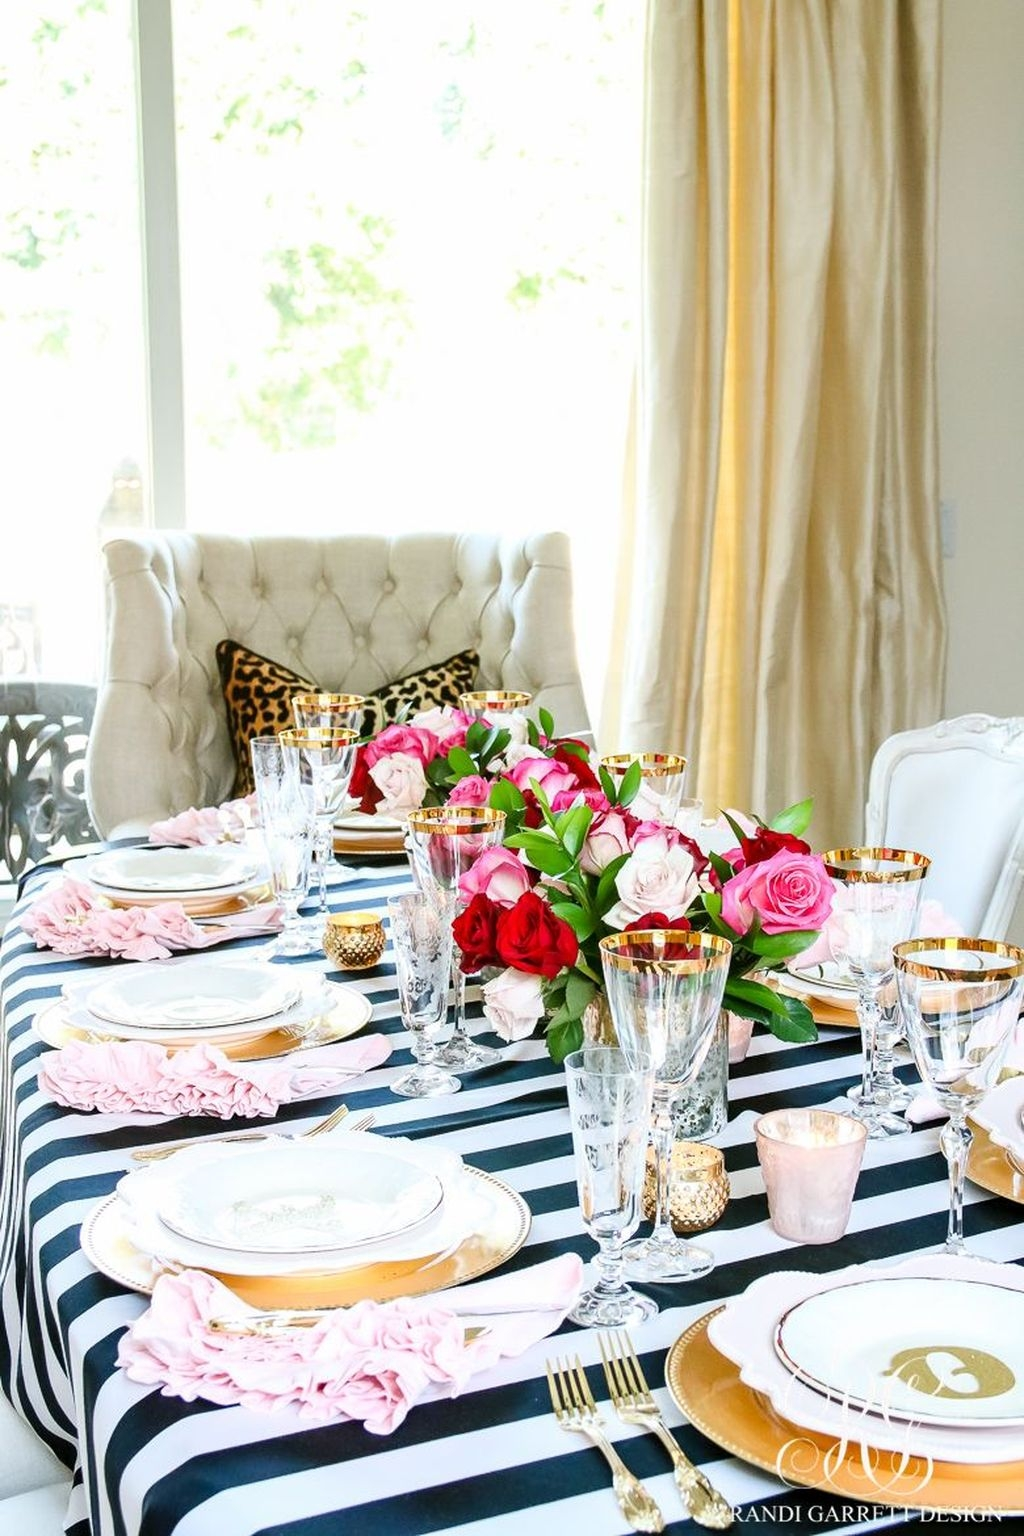 Elegant Table Settings Design Ideas For Valentines Day28